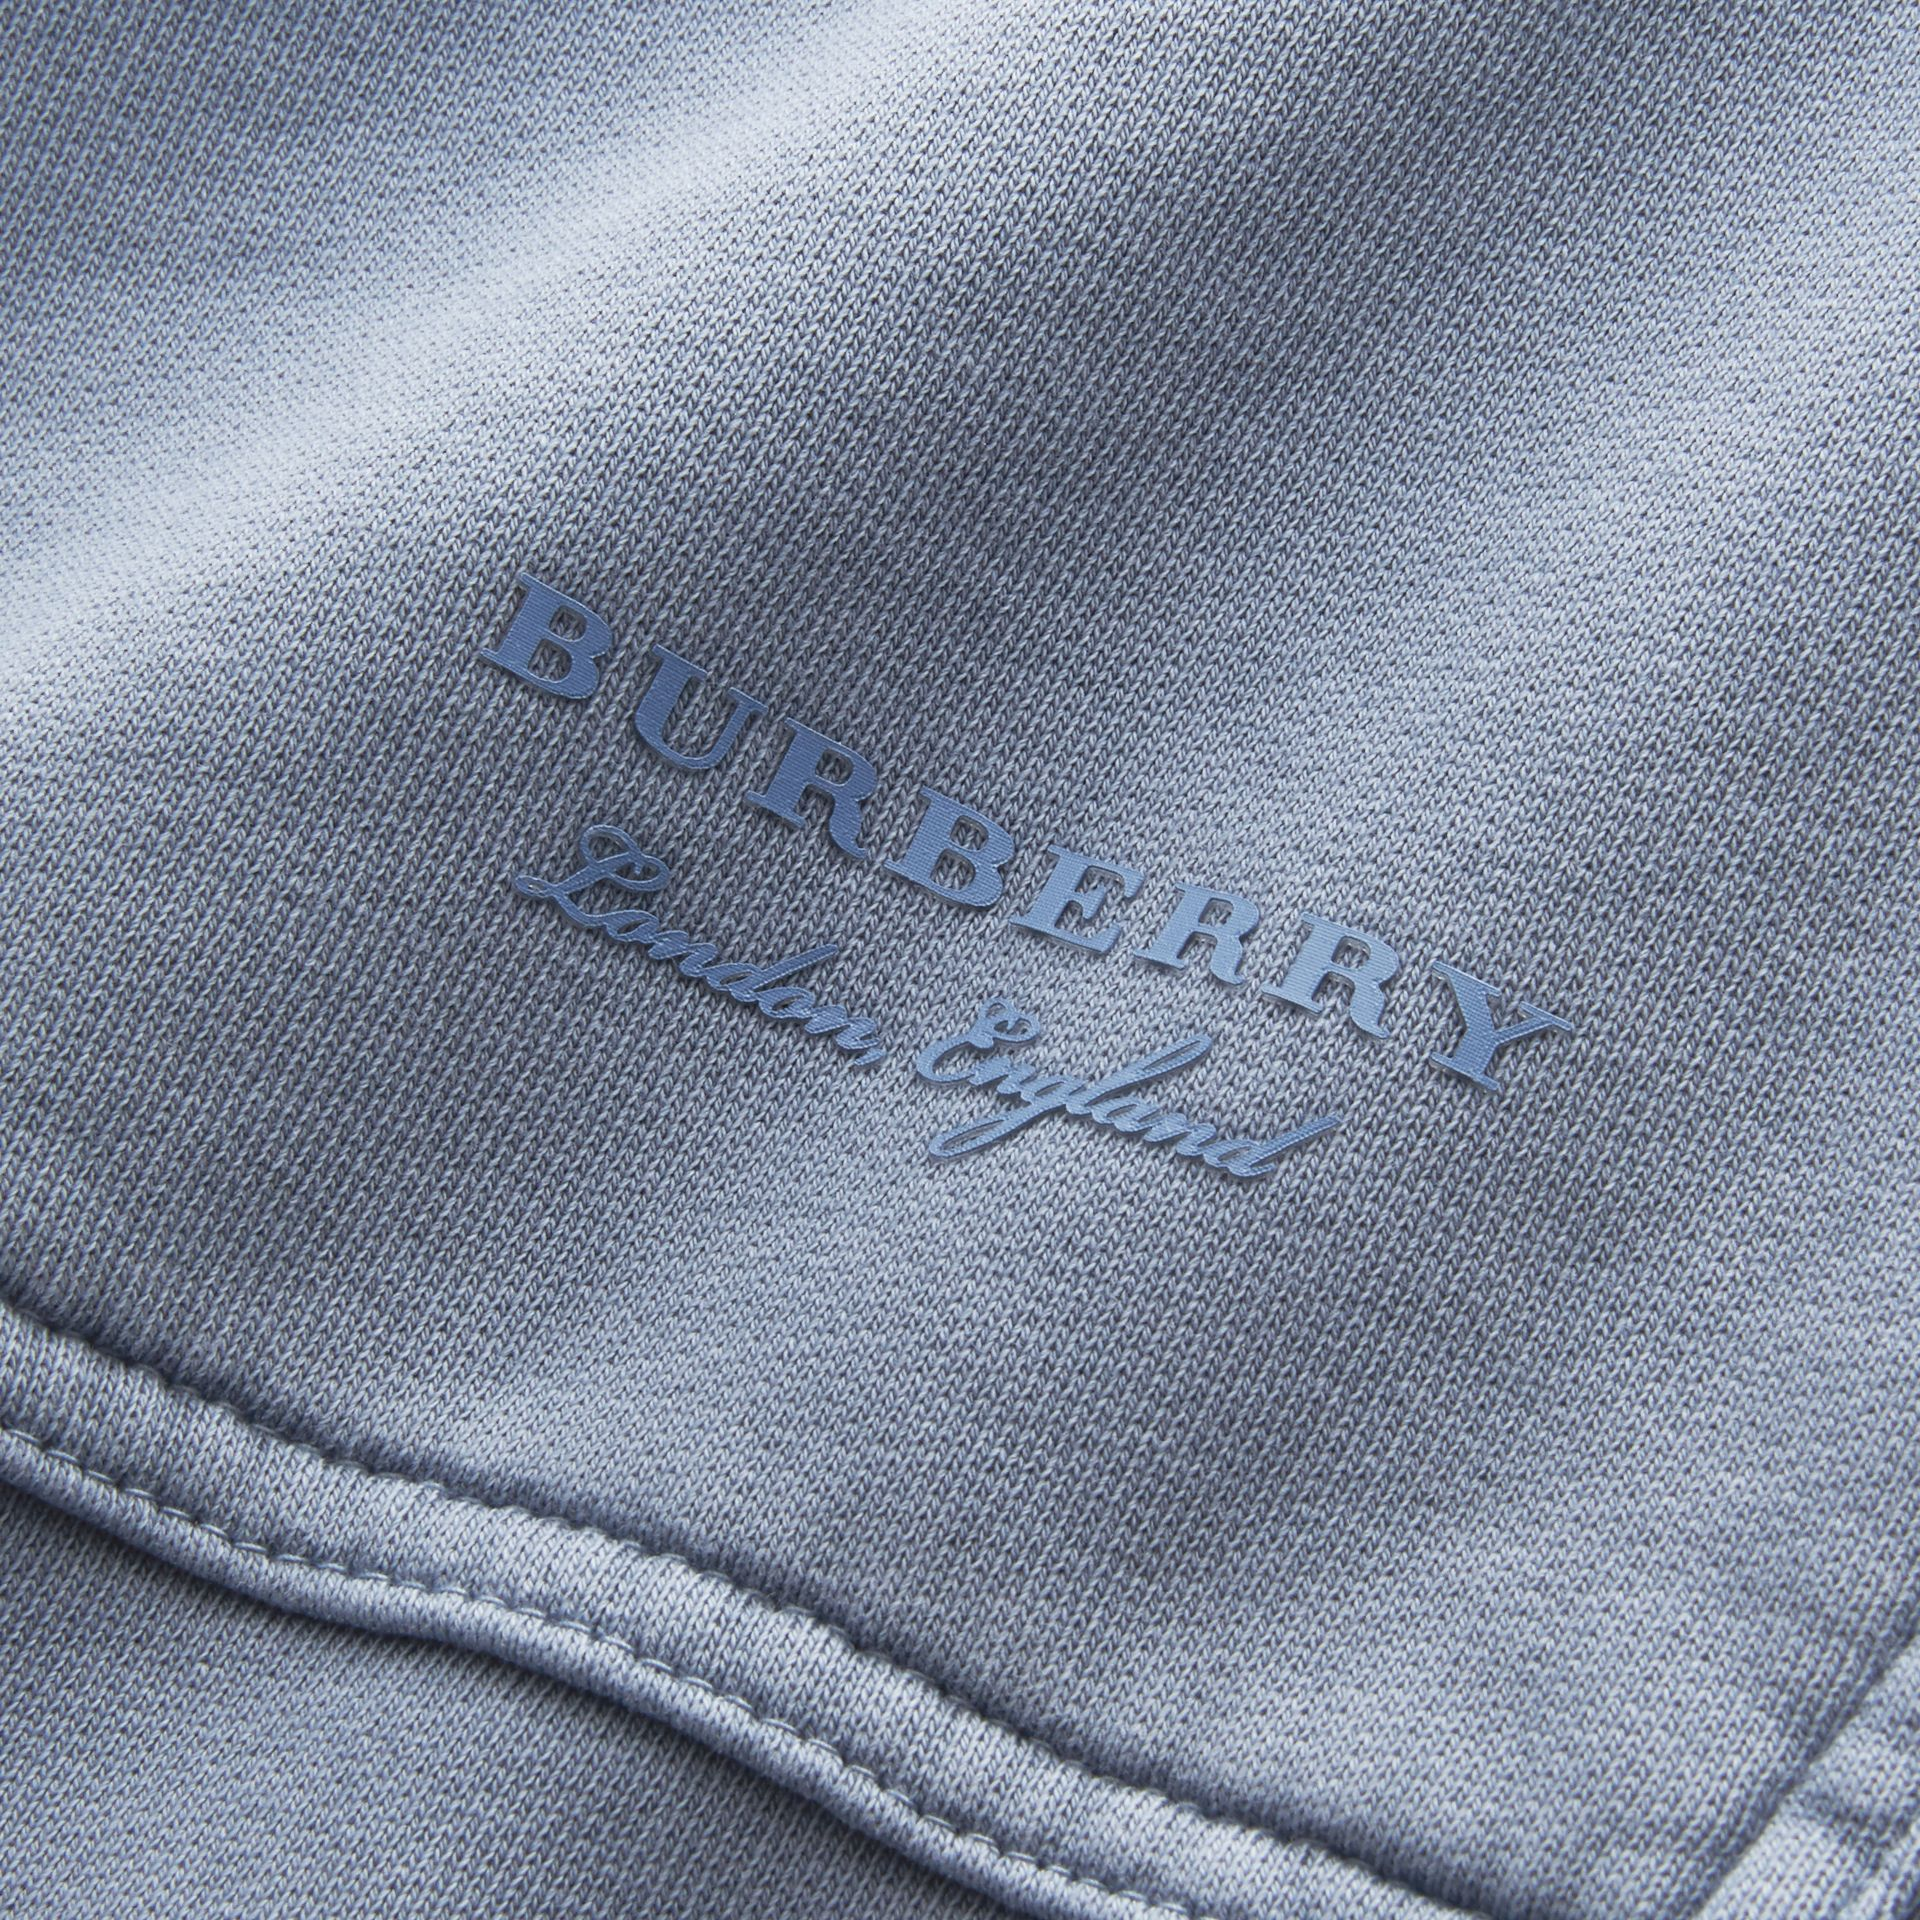 Unisex Pigment-dyed Cotton Oversize Sweatshirt in Dusty Blue - Women | Burberry - gallery image 2